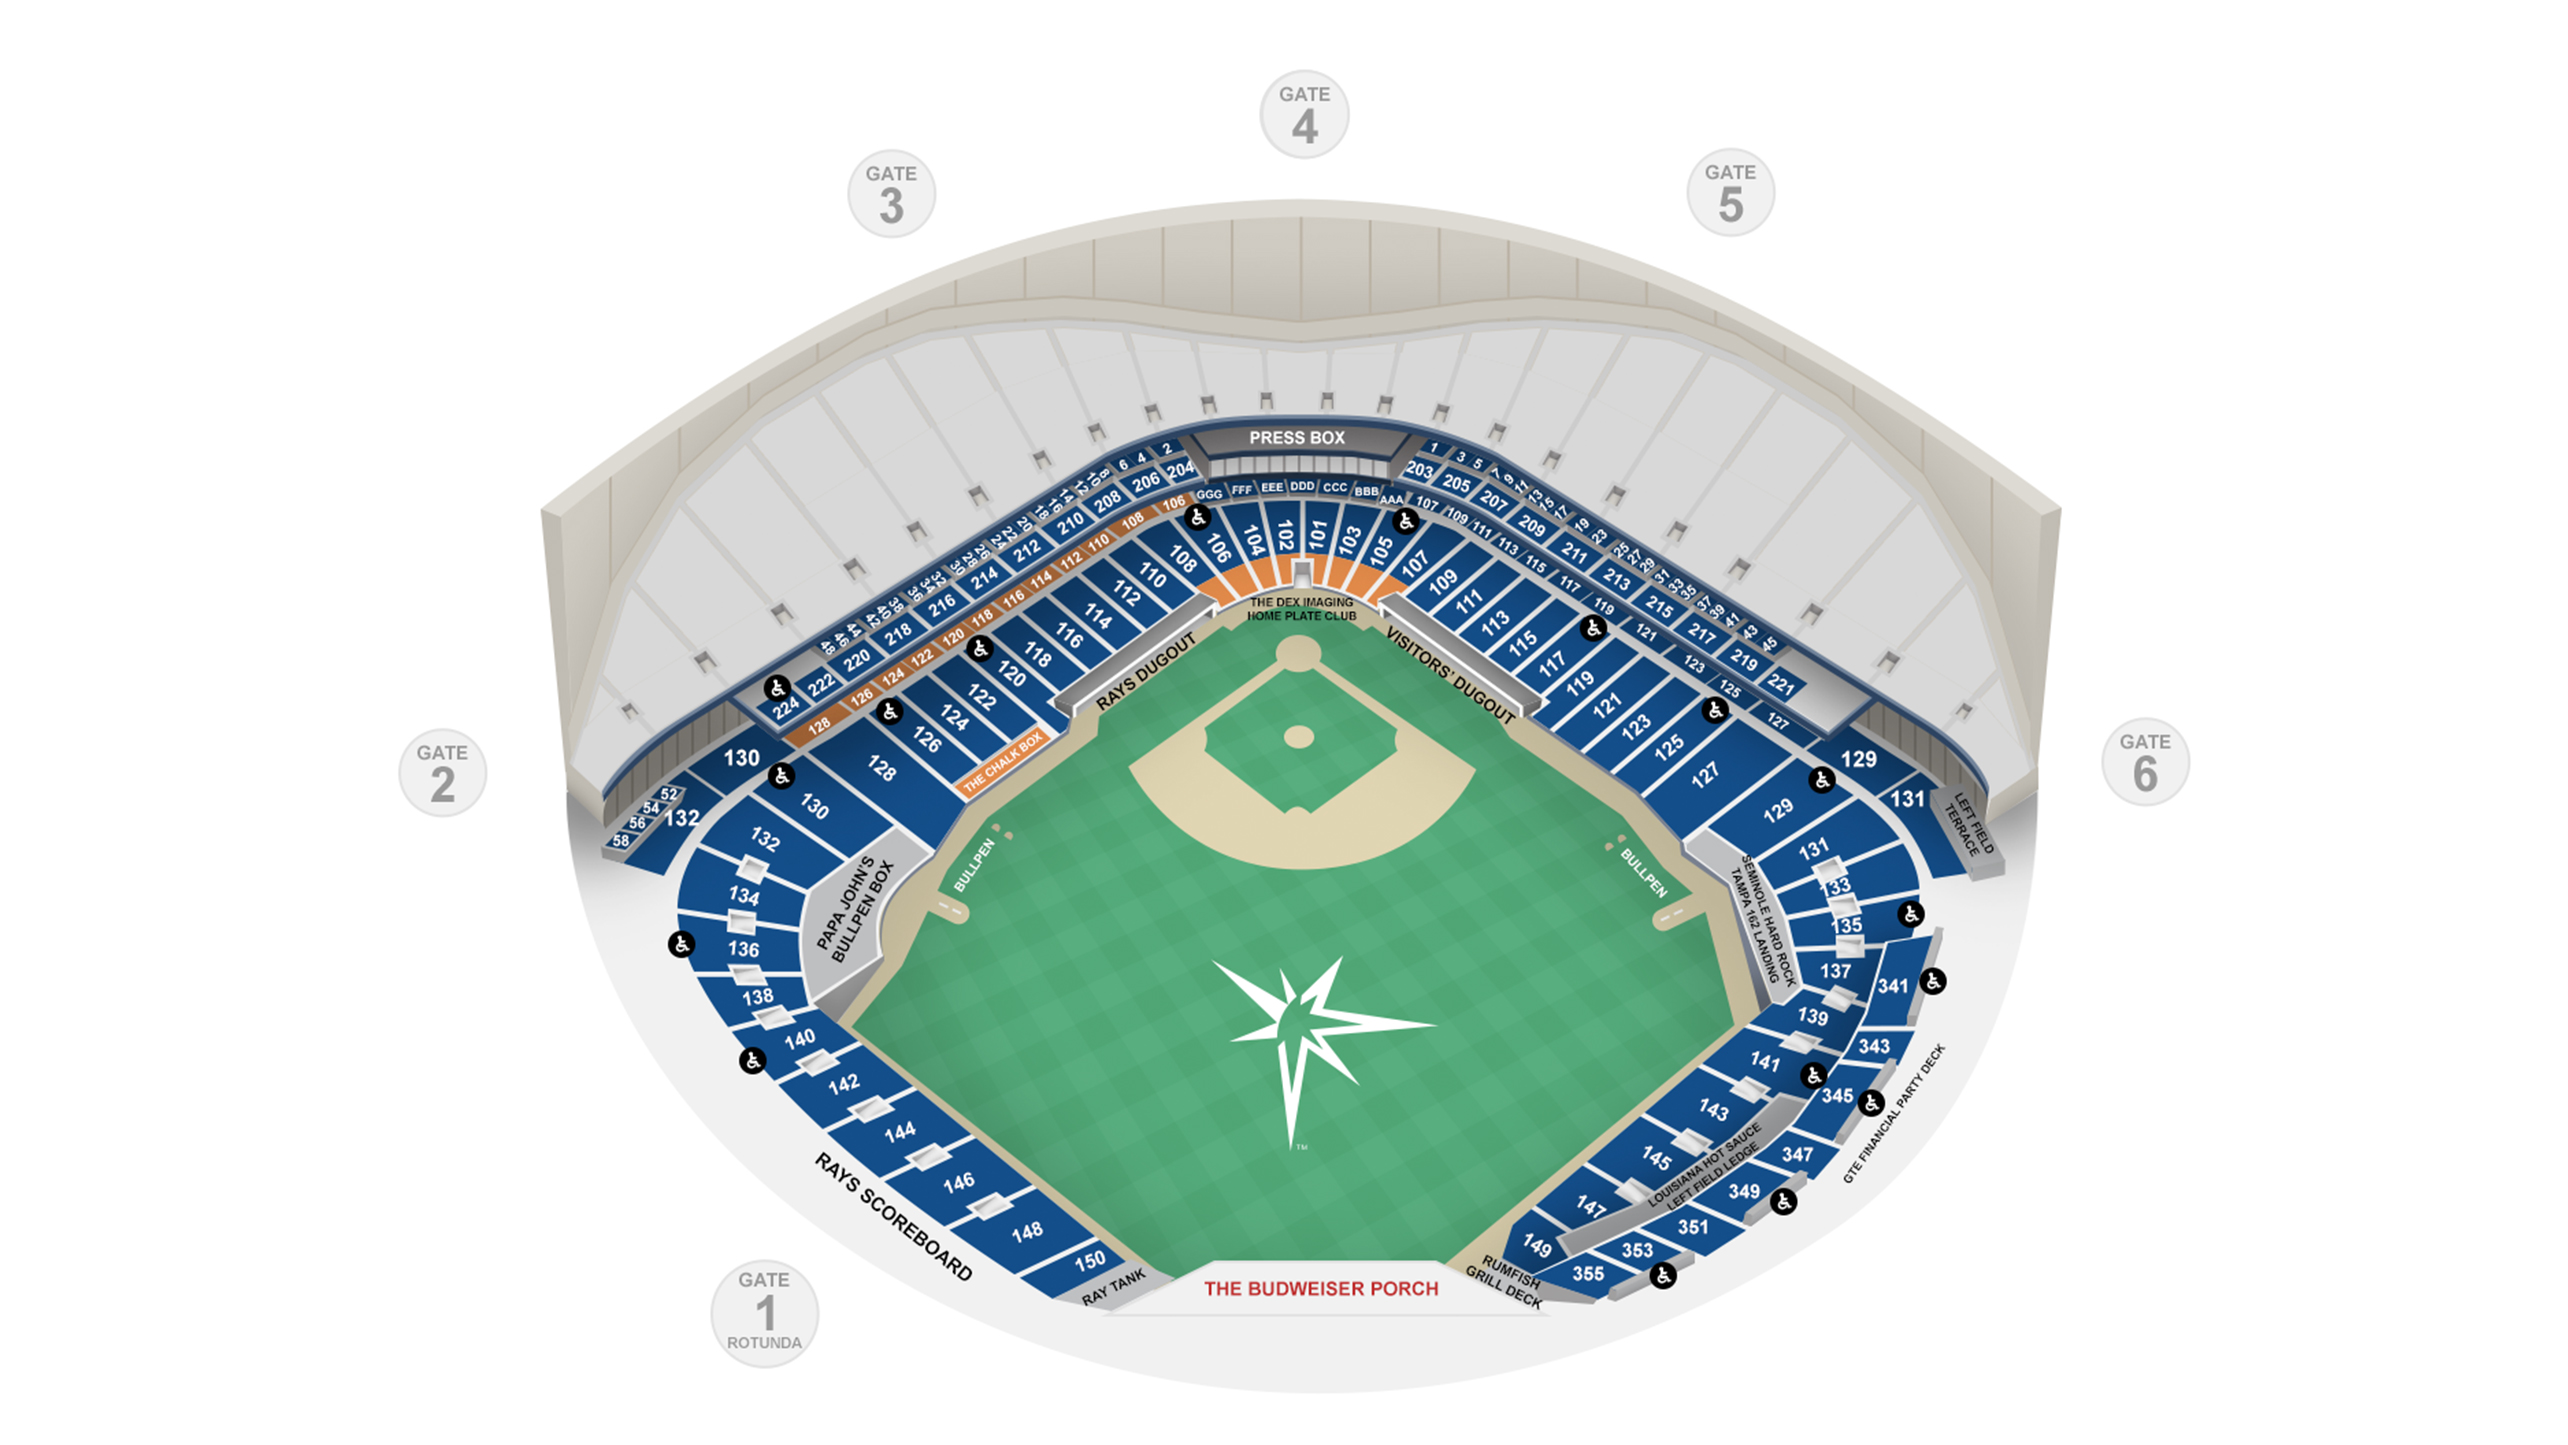 Tropicana Field Seating Map Tampa Bay Rays Tampa Bay Rays Tampa Bay Tampa